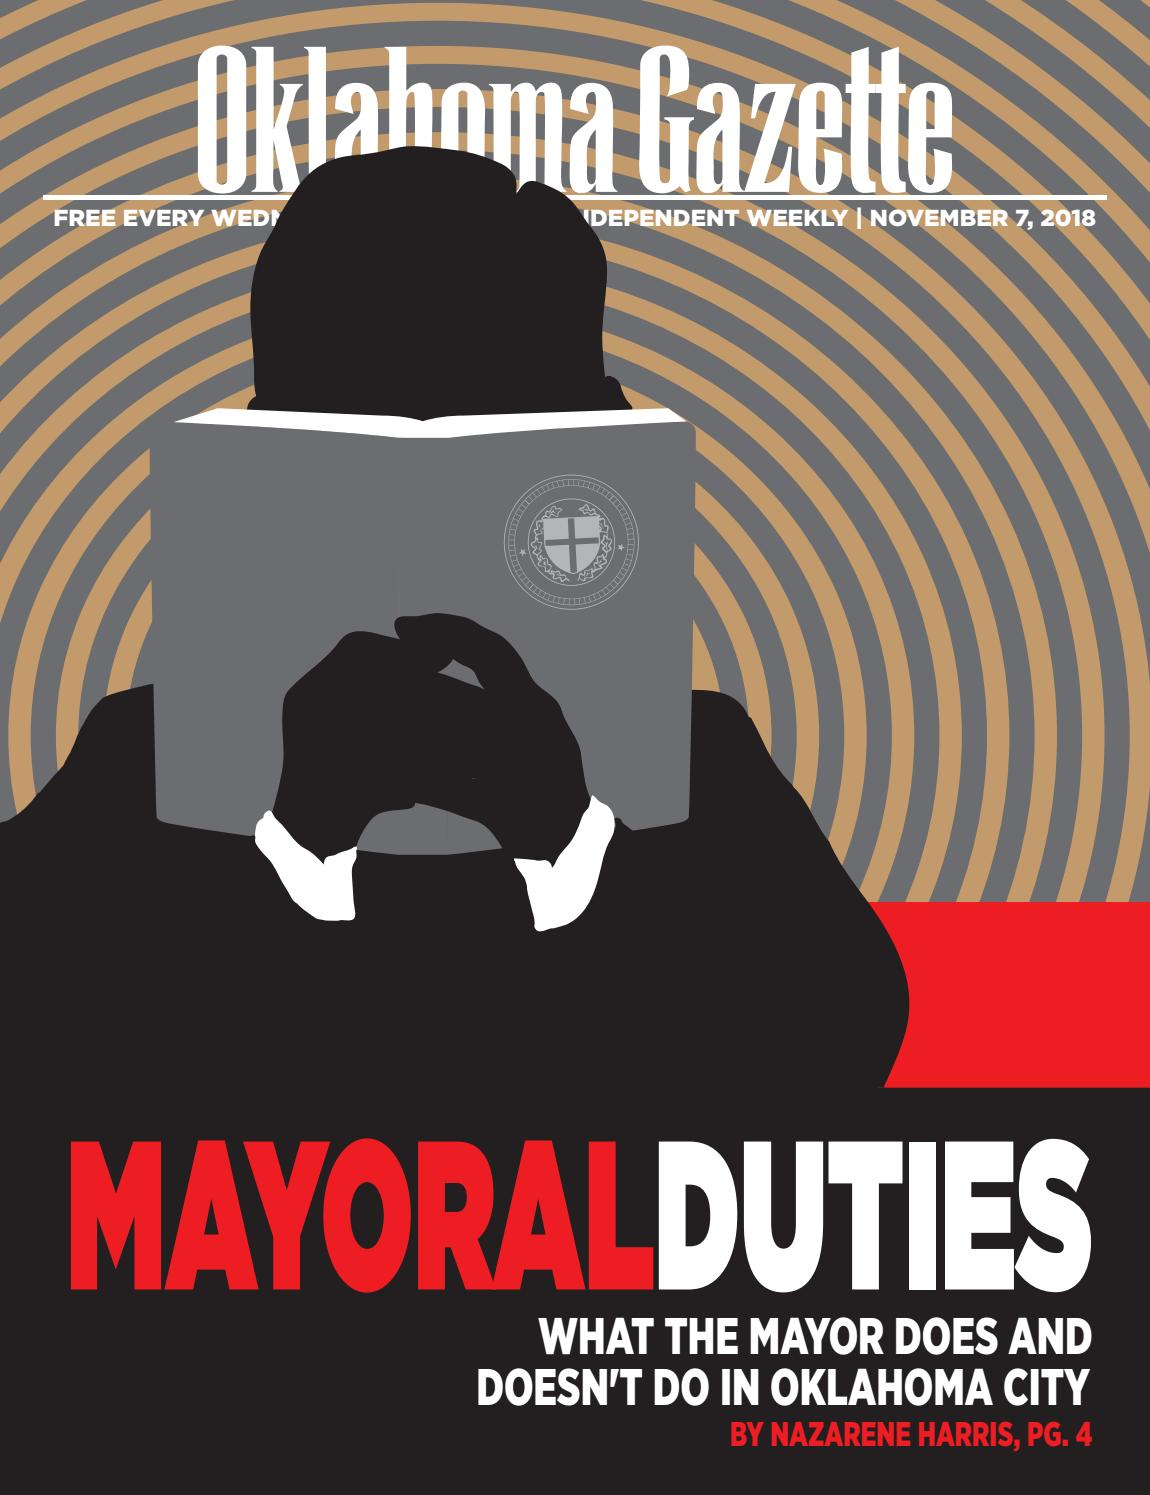 e0c492b1069 Mayoral duties by Oklahoma Gazette - issuu